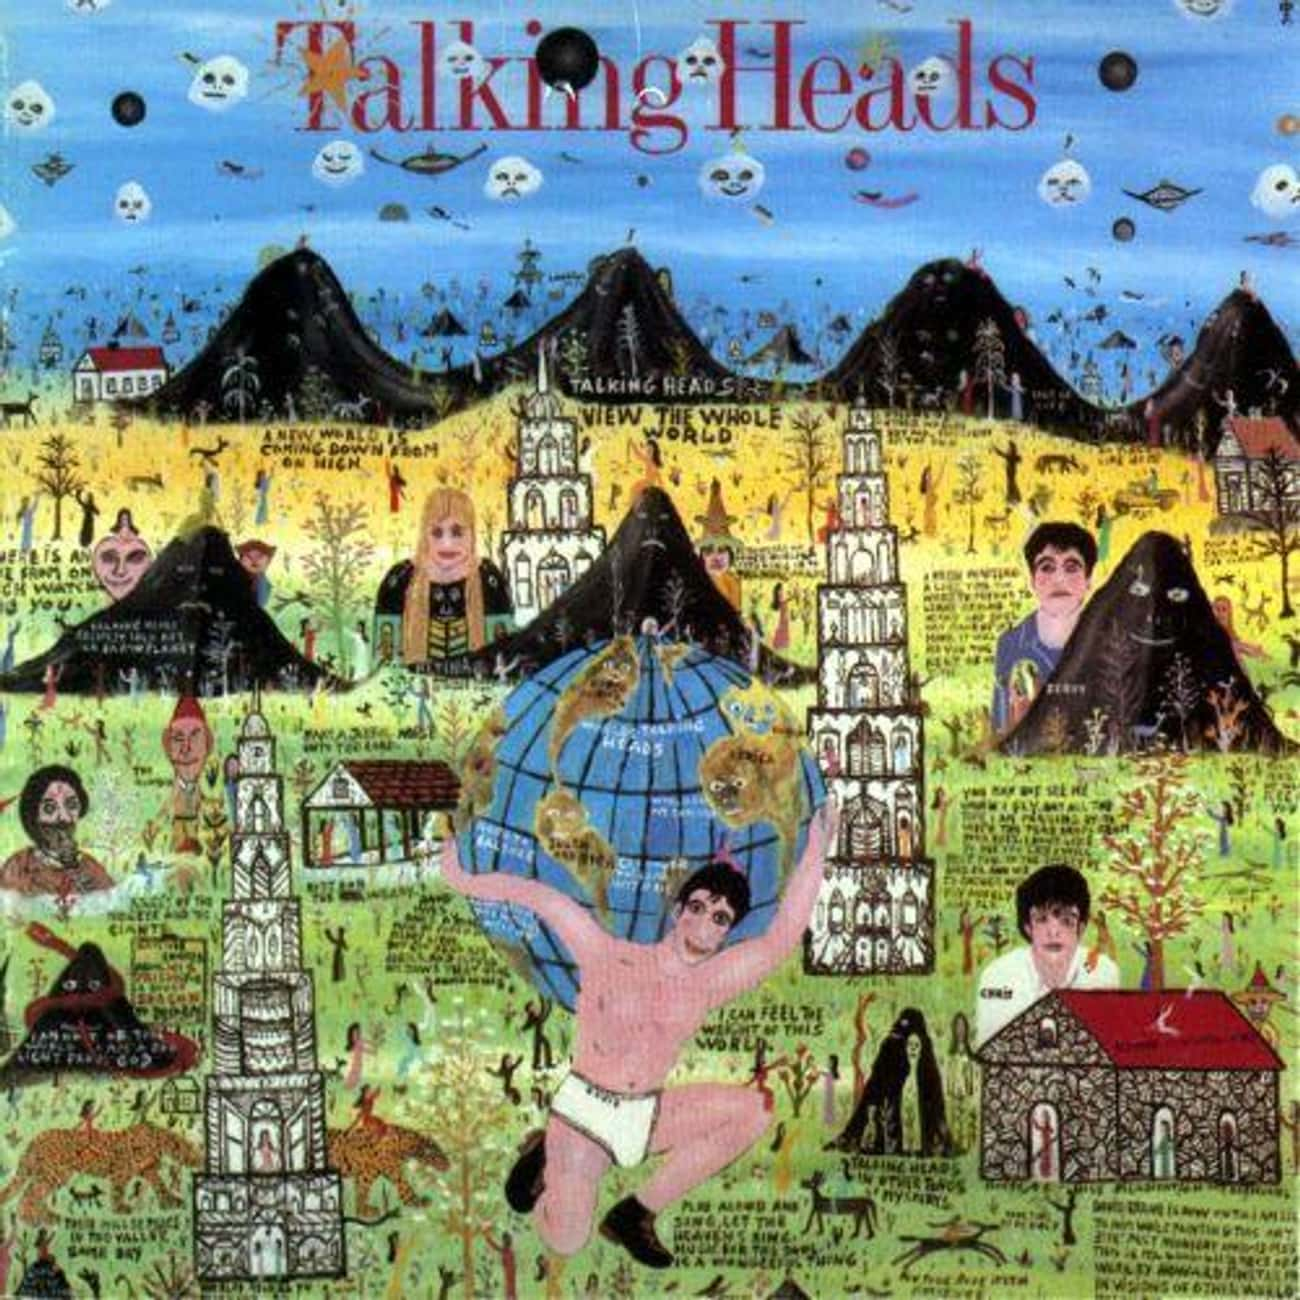 Talking Heads: 'Stay Up Late' is listed (or ranked) 3 on the list Songs With 'Baby' In Them That Are About Actual Babies